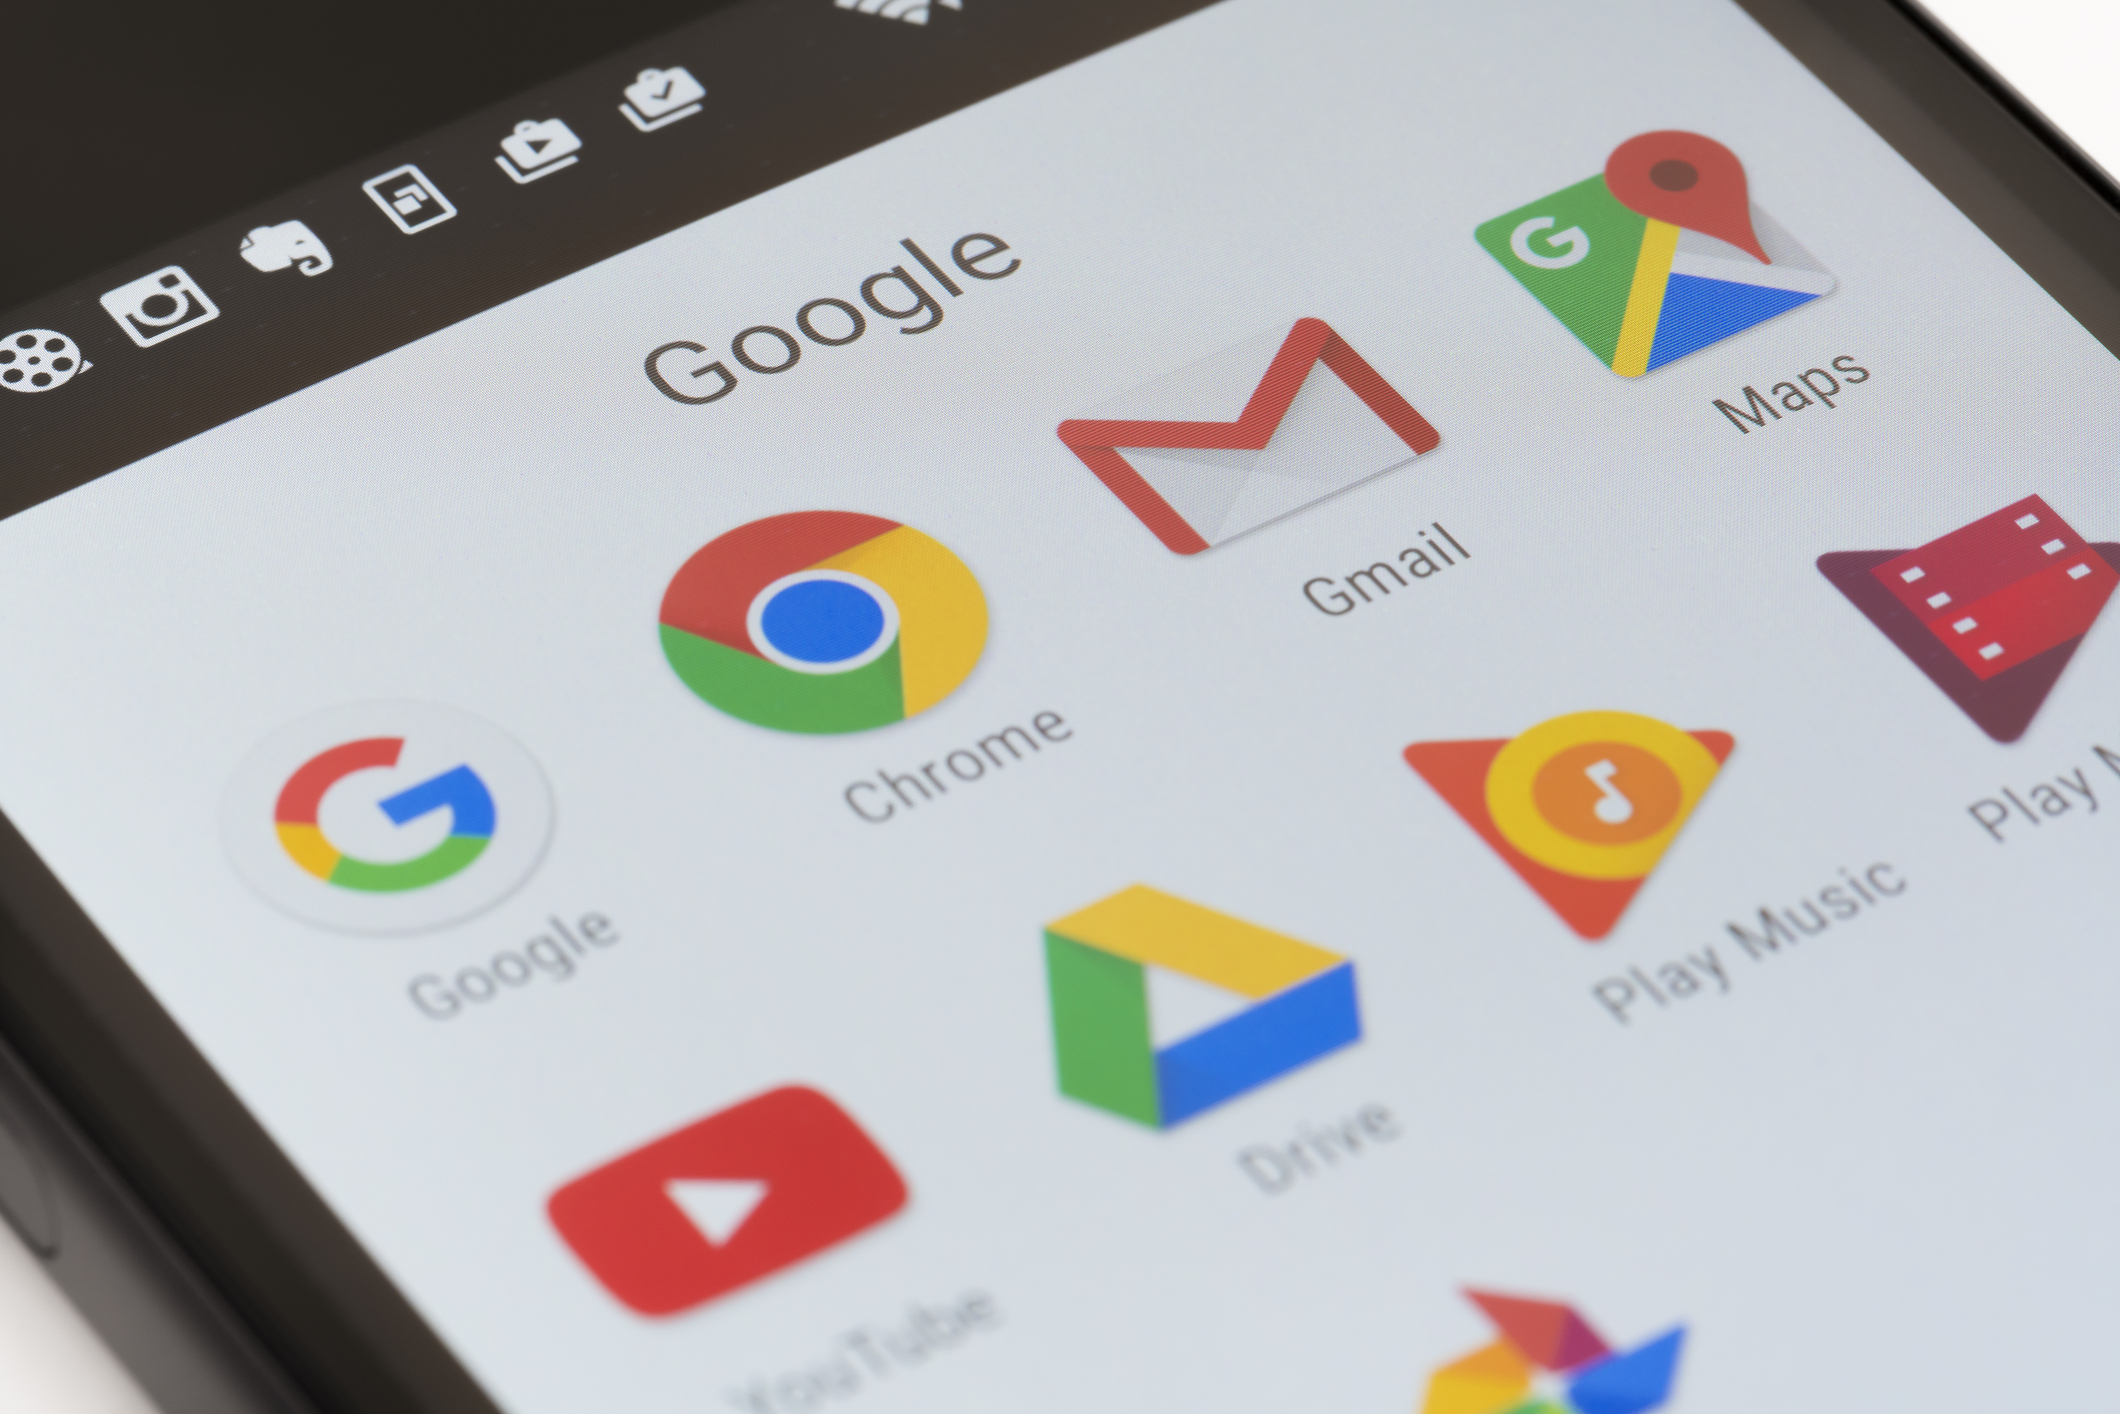 Data breach exposes details of Google personnel